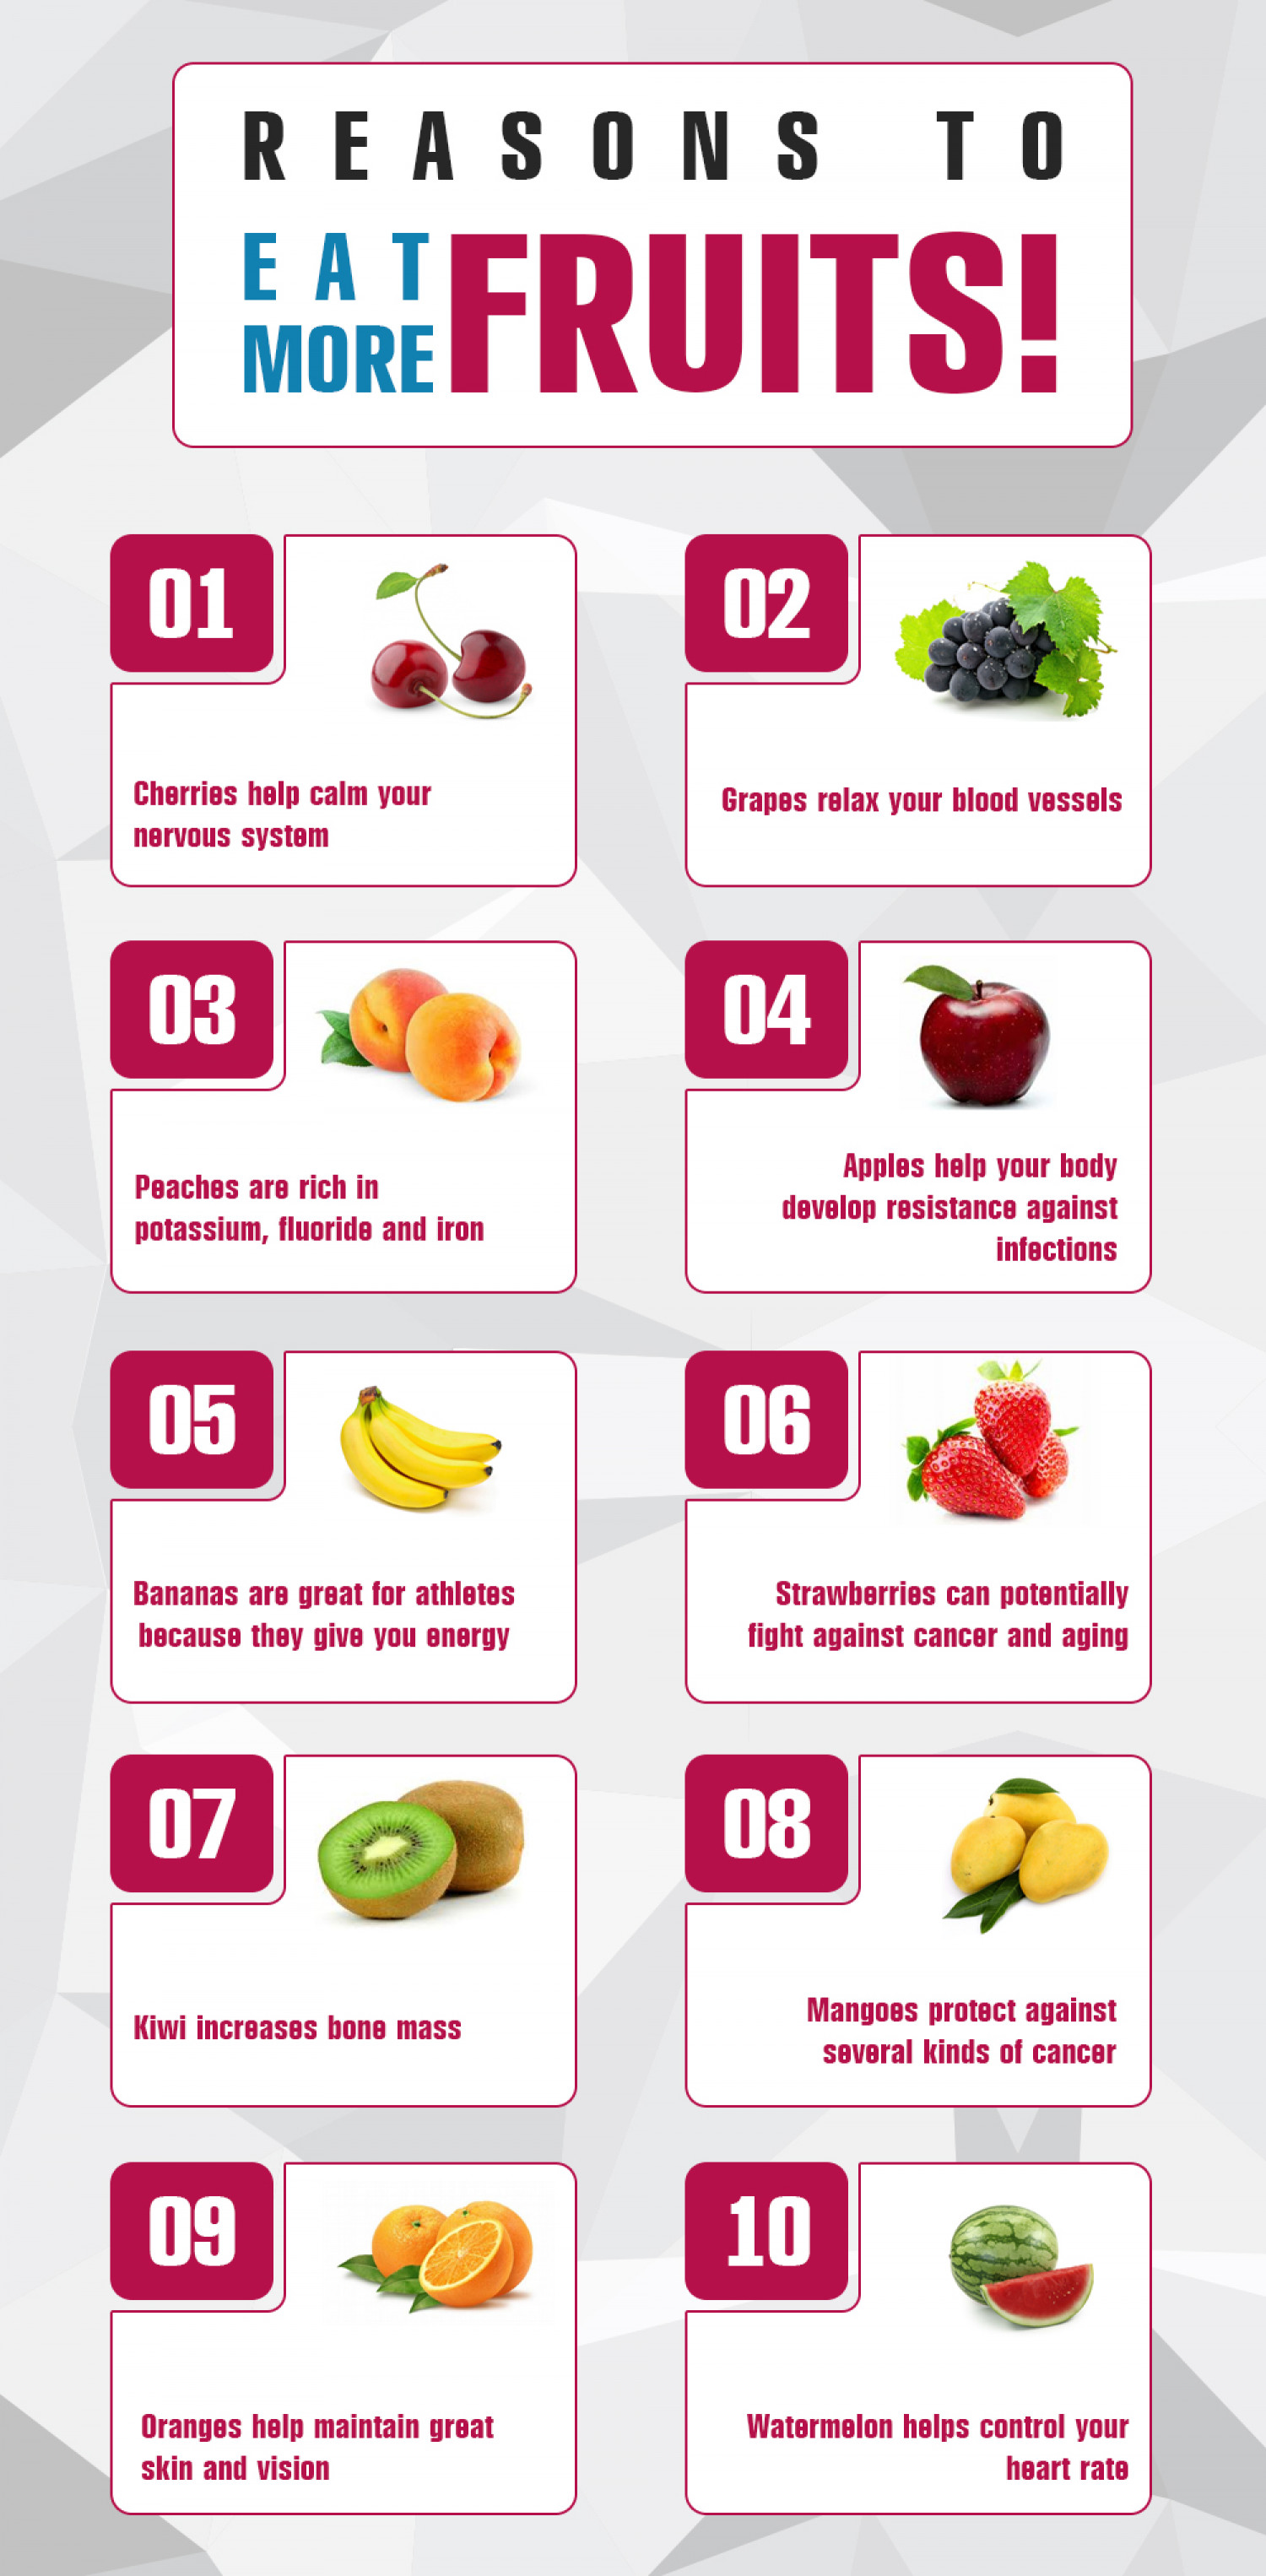 health and nutrition benefits of fruit | visual.ly